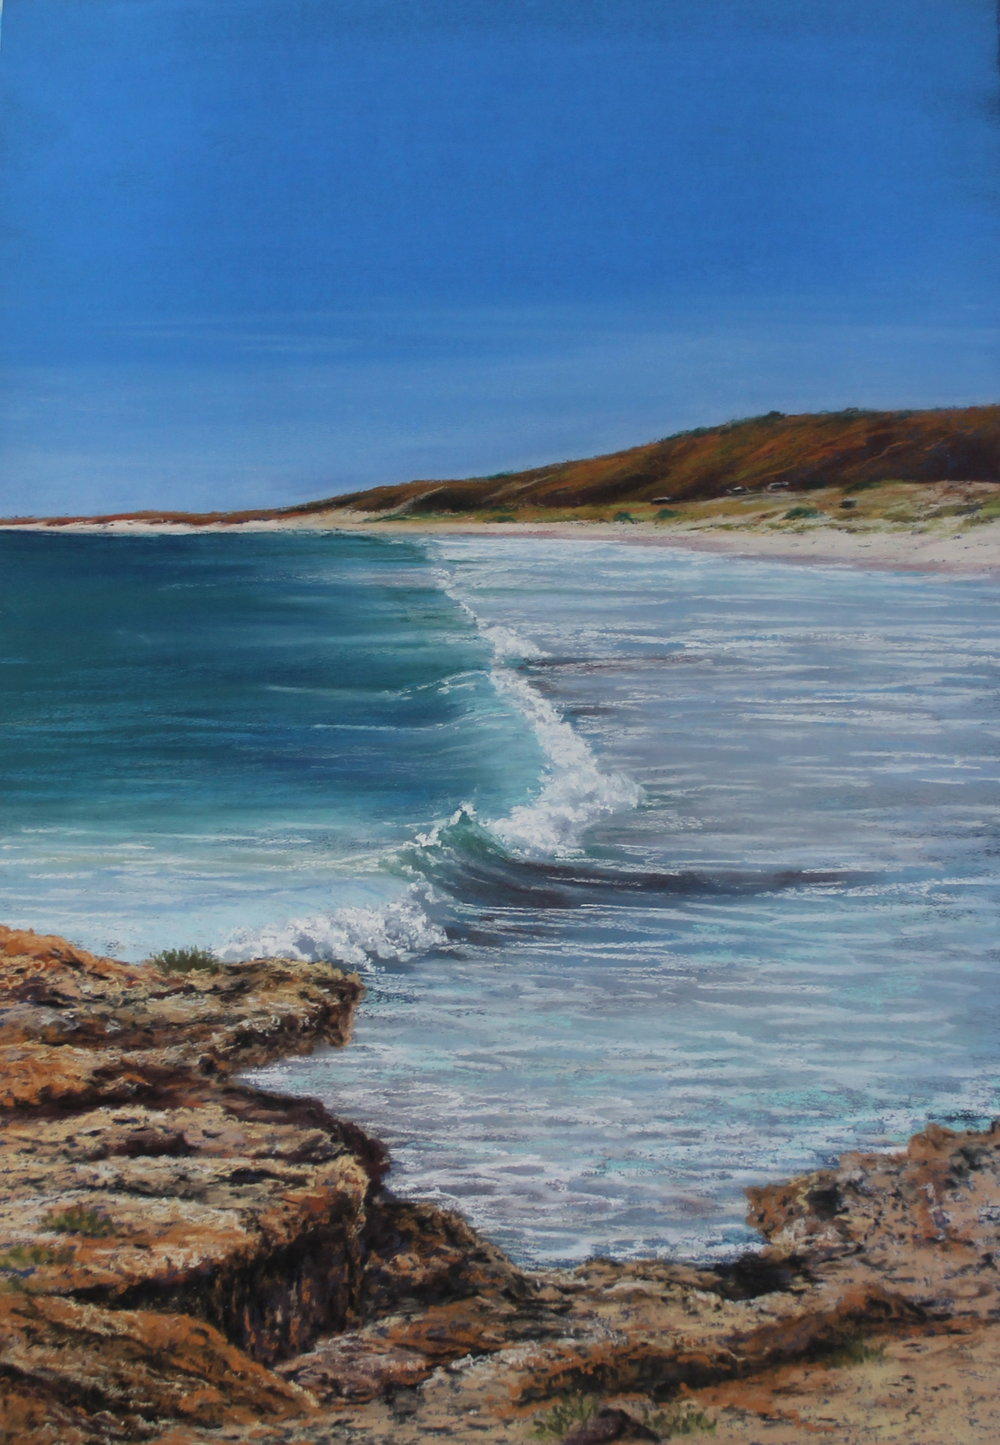 Ann Steer is a Western Australian Seascape artist.  Ann was so inspired by recent travels to Cable Beach, Gnaraloo and Sandy Cape and has created a collection that showcases Western Australia's powerful coastline, serene beaches and ever changing oceans.  There will be works on display in both pastels and acrylics.